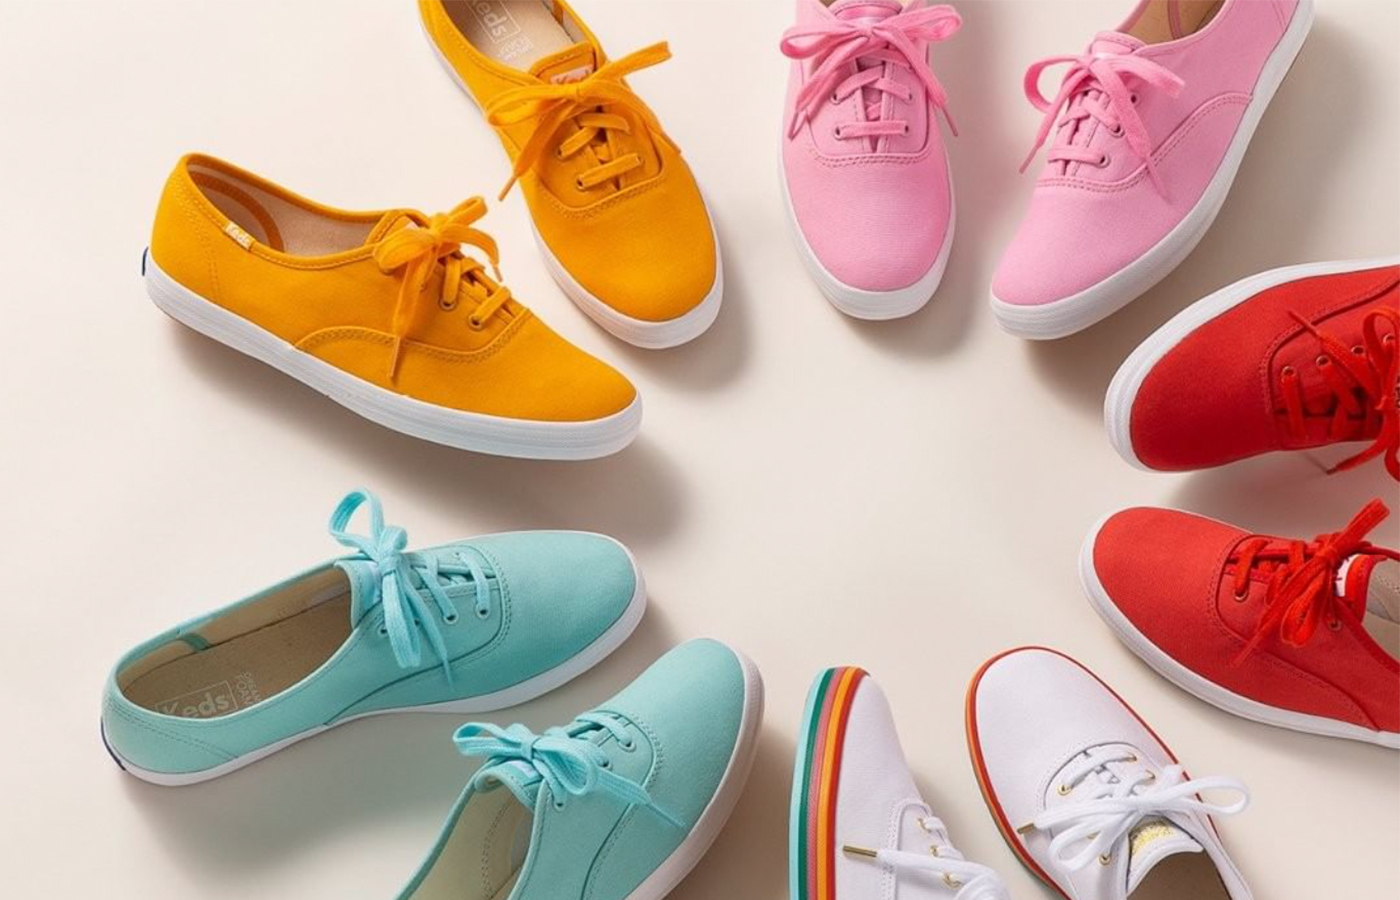 Keds' best-selling signature sneakers